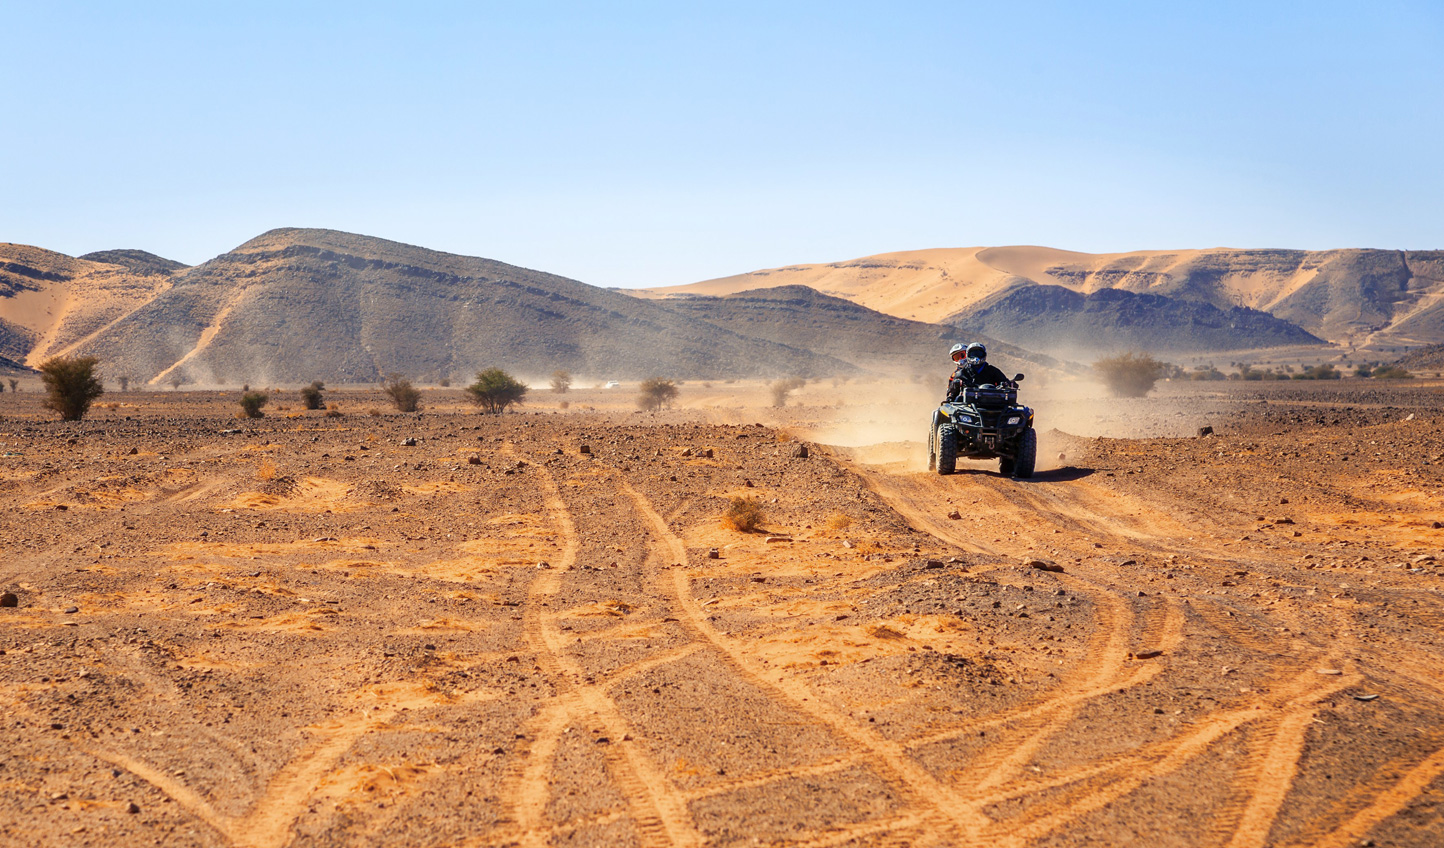 Ramp things up and explore the Agafay Desert by quad bike